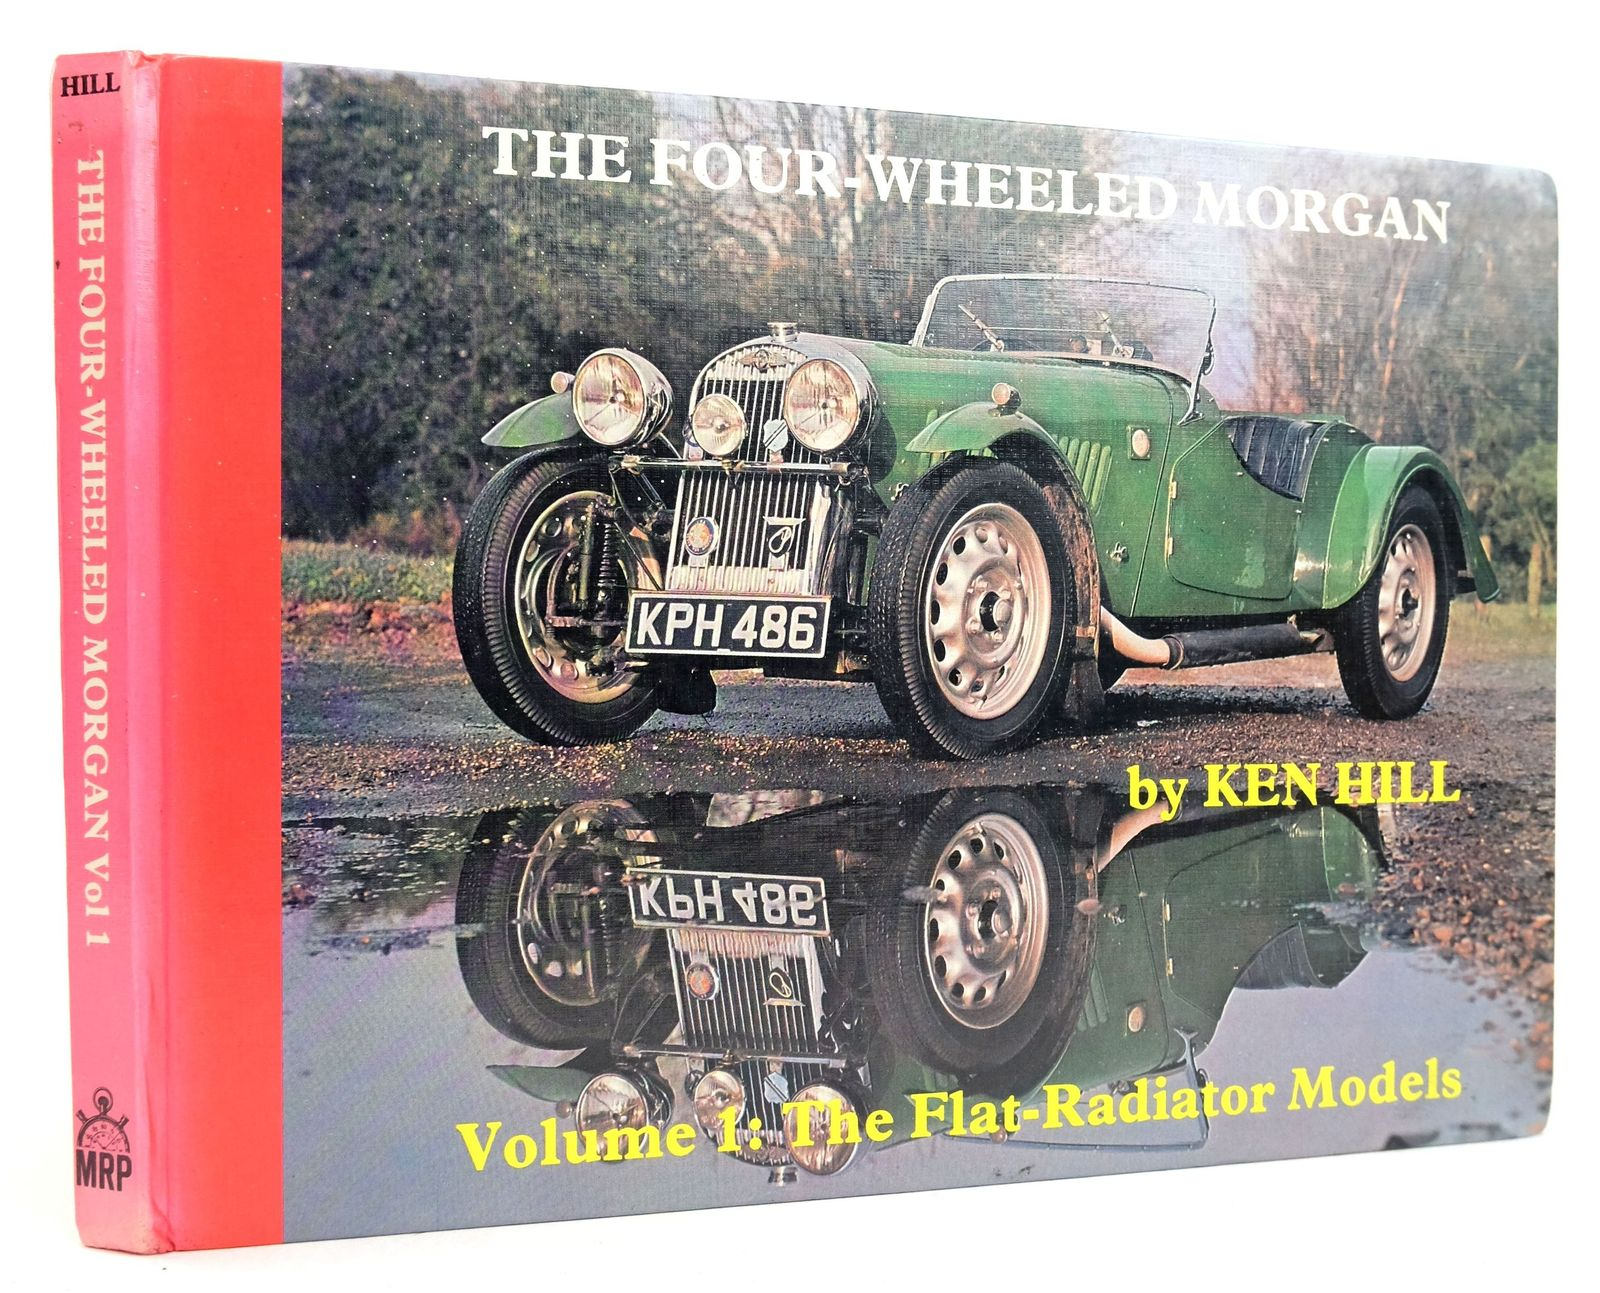 Photo of THE FOUR-WHEELED MORGAN VOLUME 1: THE FLAT-RADIATOR MODELS written by Hill, Ken published by Motor Racing Publications Ltd. (STOCK CODE: 1819927)  for sale by Stella & Rose's Books